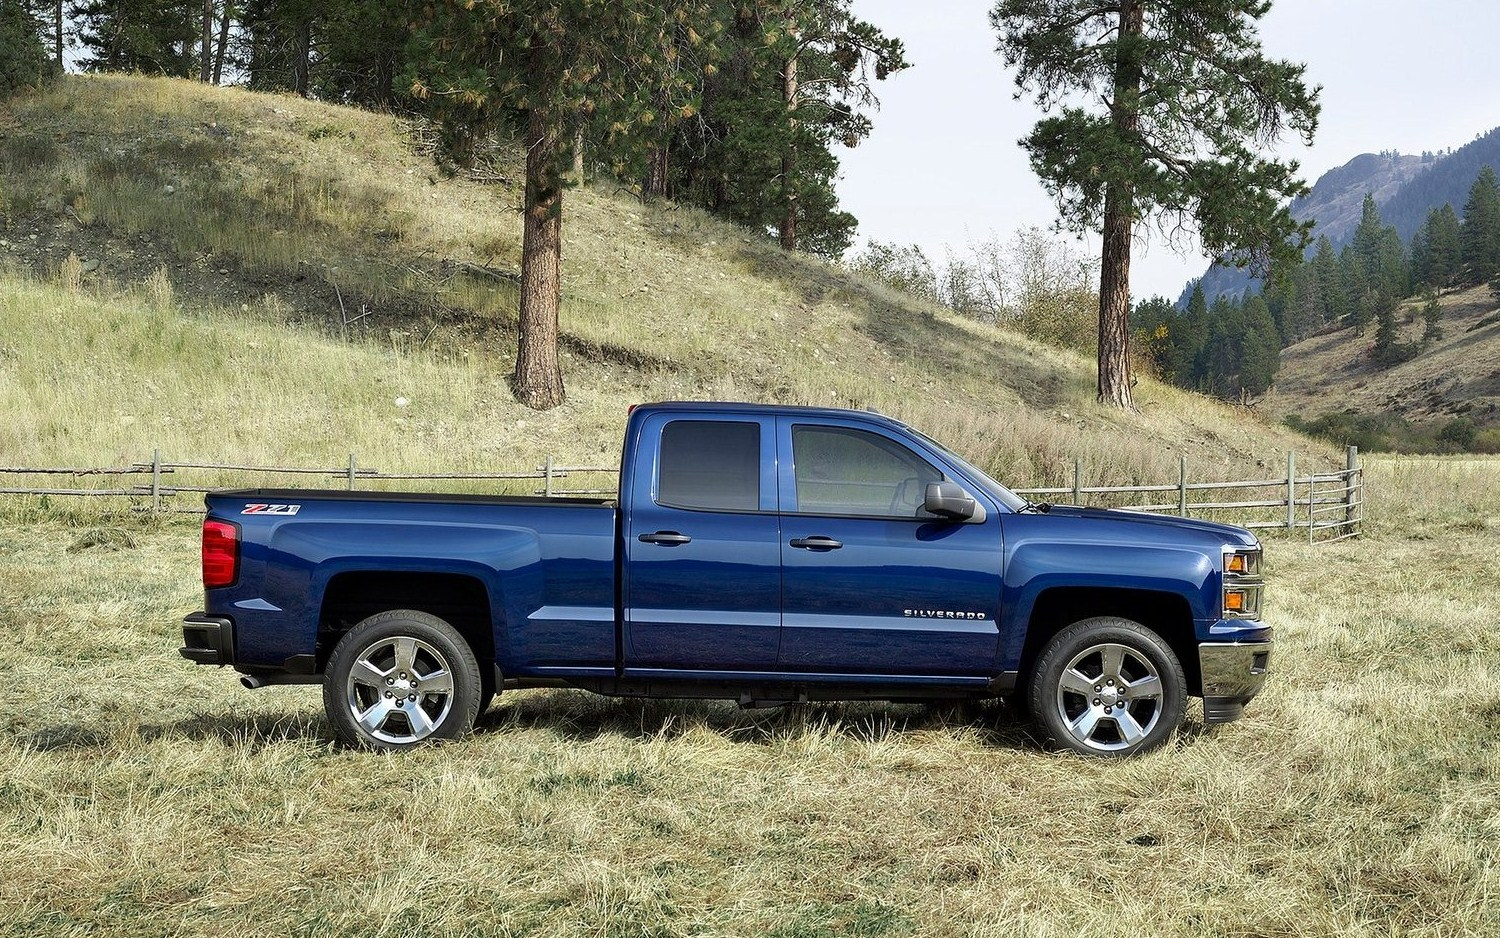 شيفروليه سلفرادو Chevrolet Silverado new-2014-chevrolet-silverado-side-view.jpg